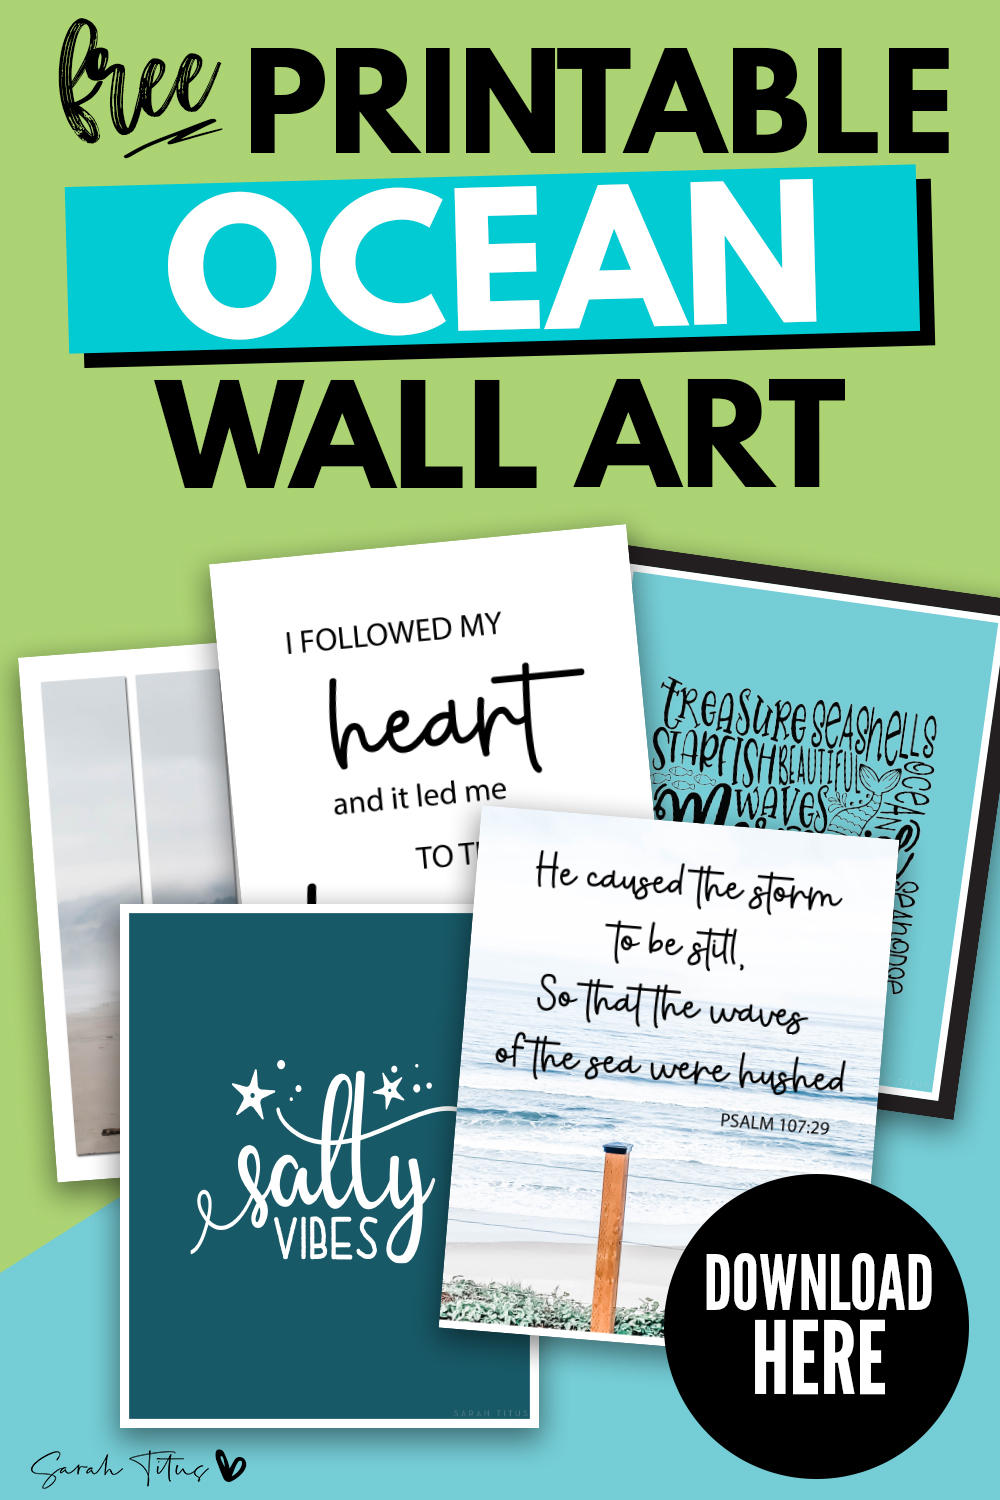 Grab this beach home decor printable to decorate your home with! These ocean wall art printables are perfect for your beach house or coastal decor! #oceanwallart #beachdecor #oceandecor #oceanprintables #beachprintables #freeprintables